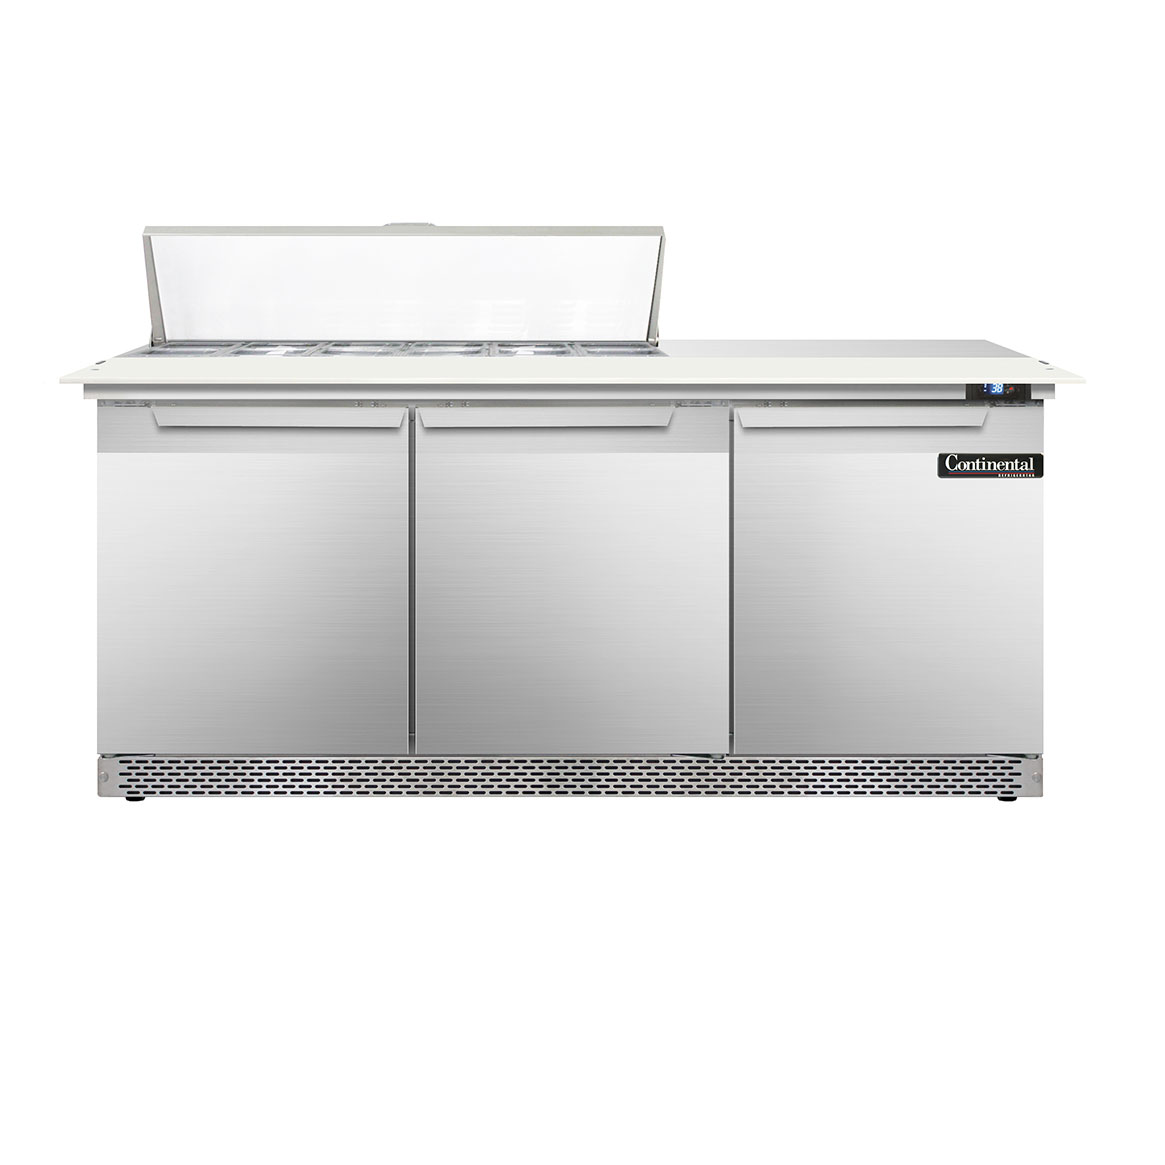 Continental Refrigerator DL72-12C-FB refrigerated counter, sandwich / salad unit